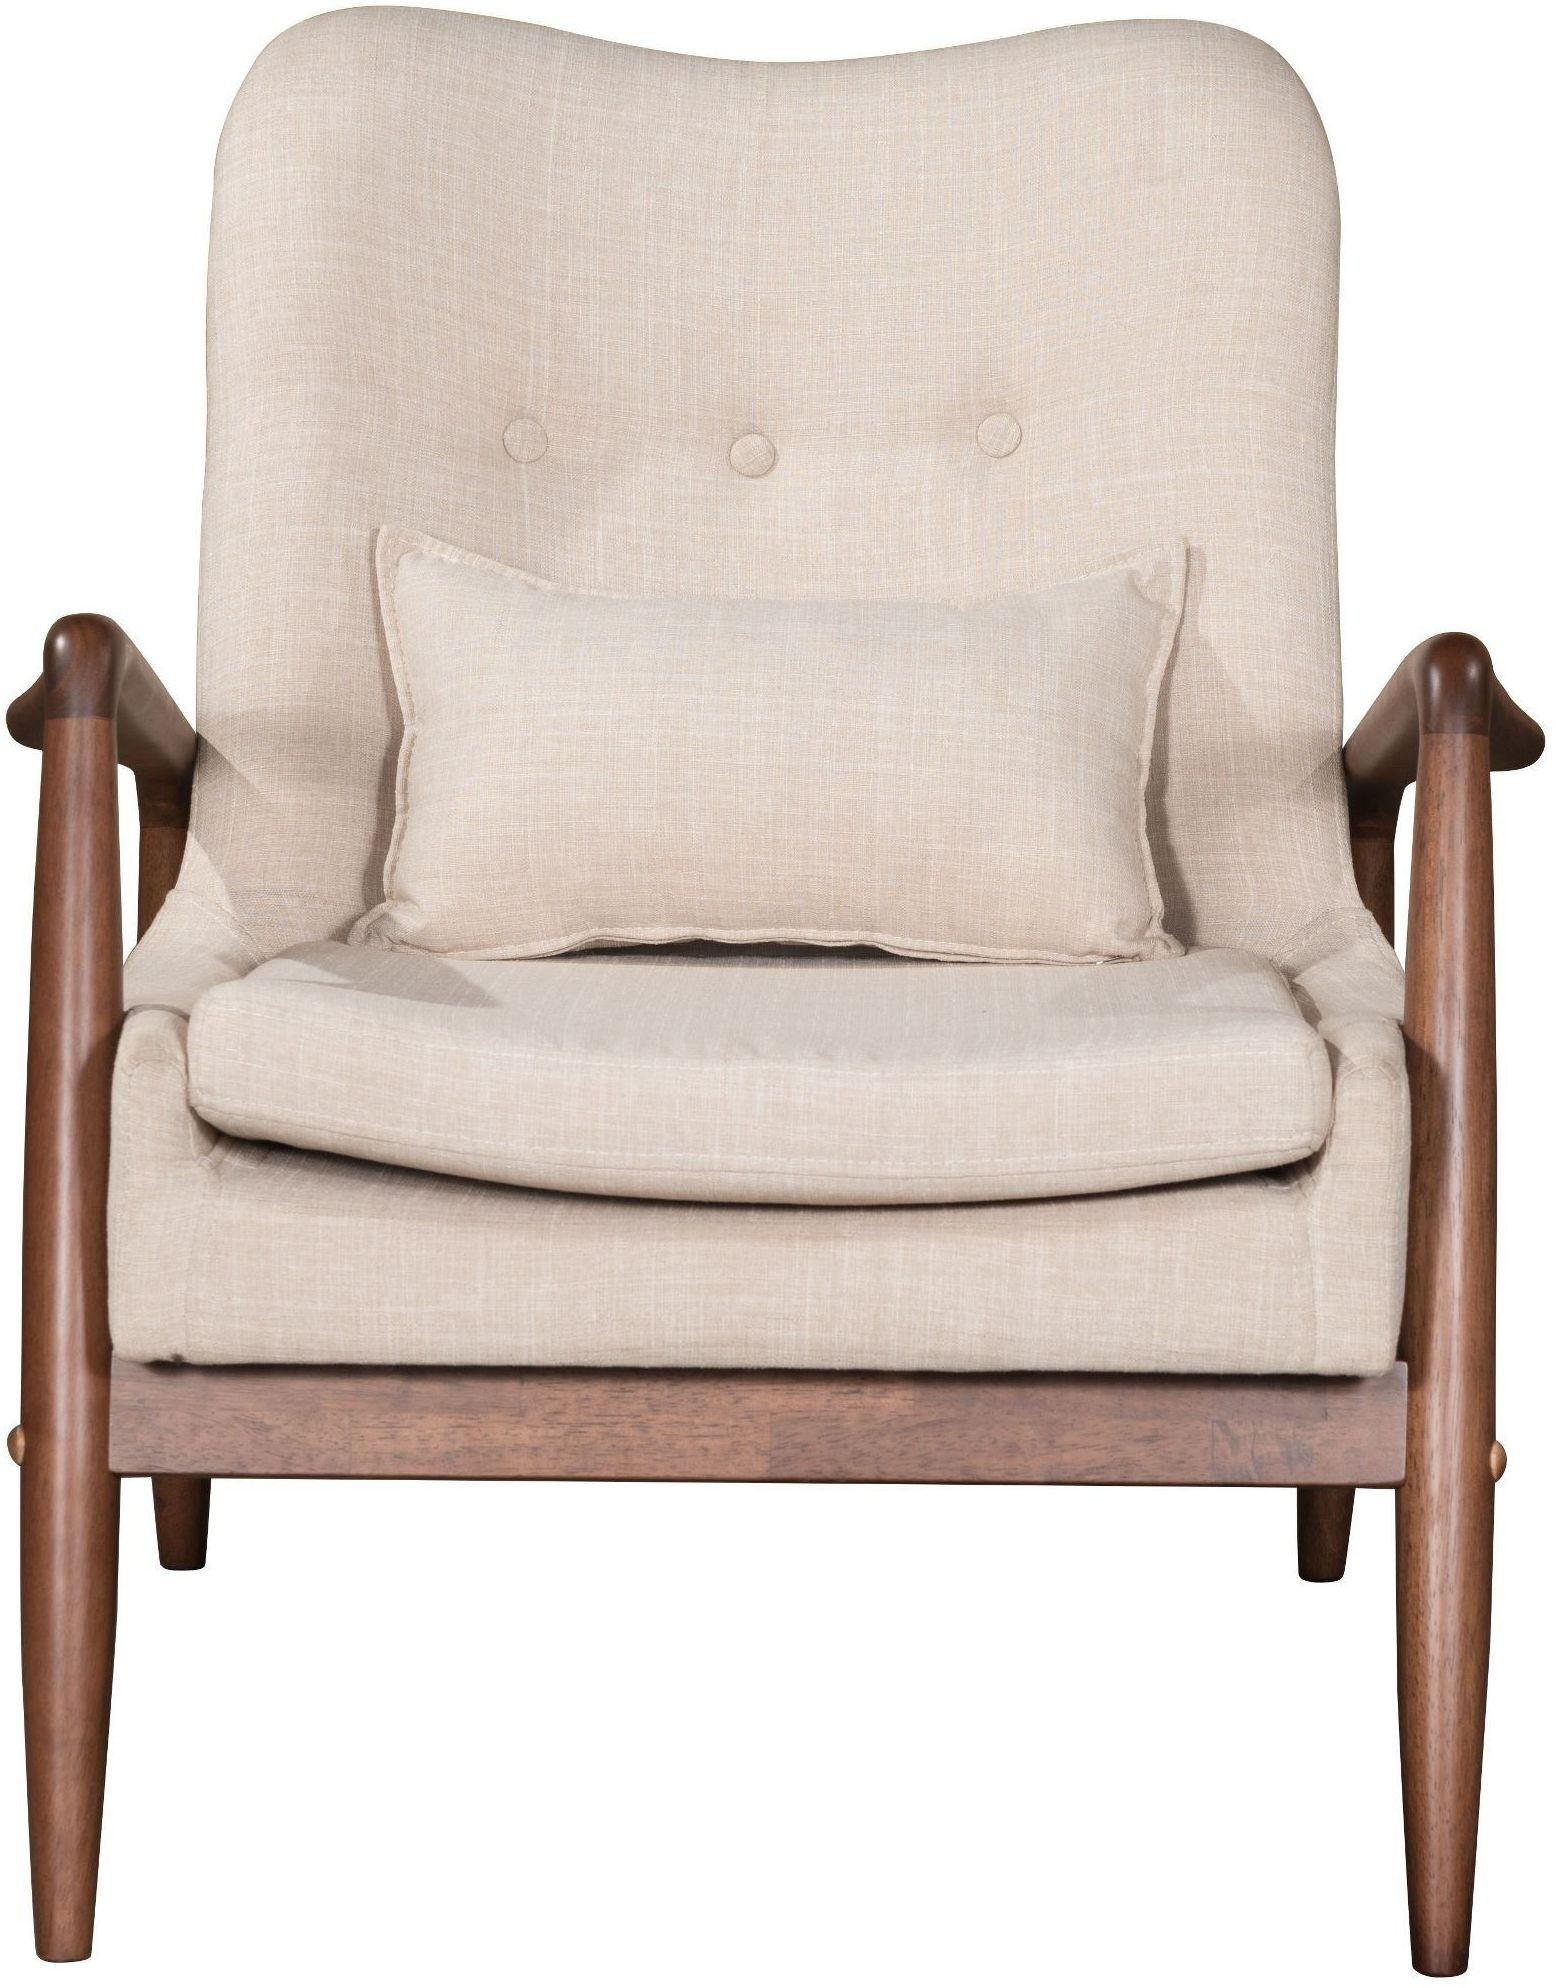 bully lounge chair ottoman beige